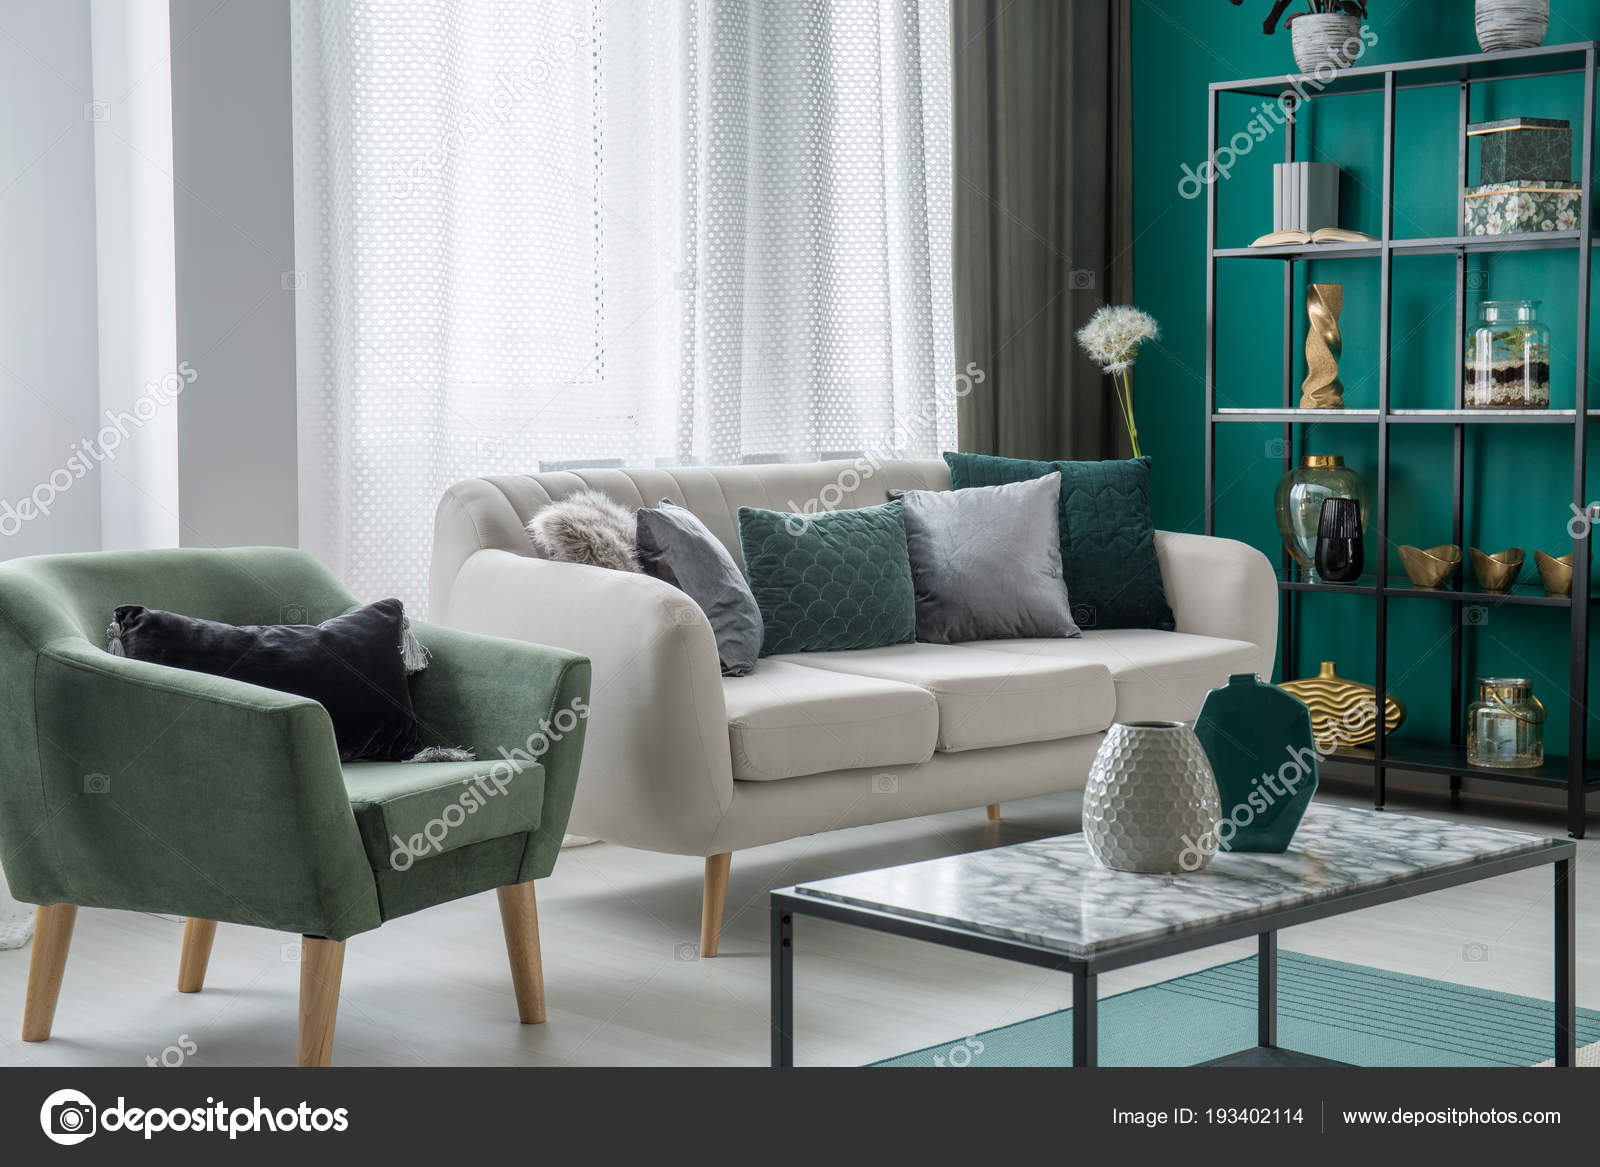 Terrific Green Silver Decorative Pillows Placed Light Grey Couch Dailytribune Chair Design For Home Dailytribuneorg